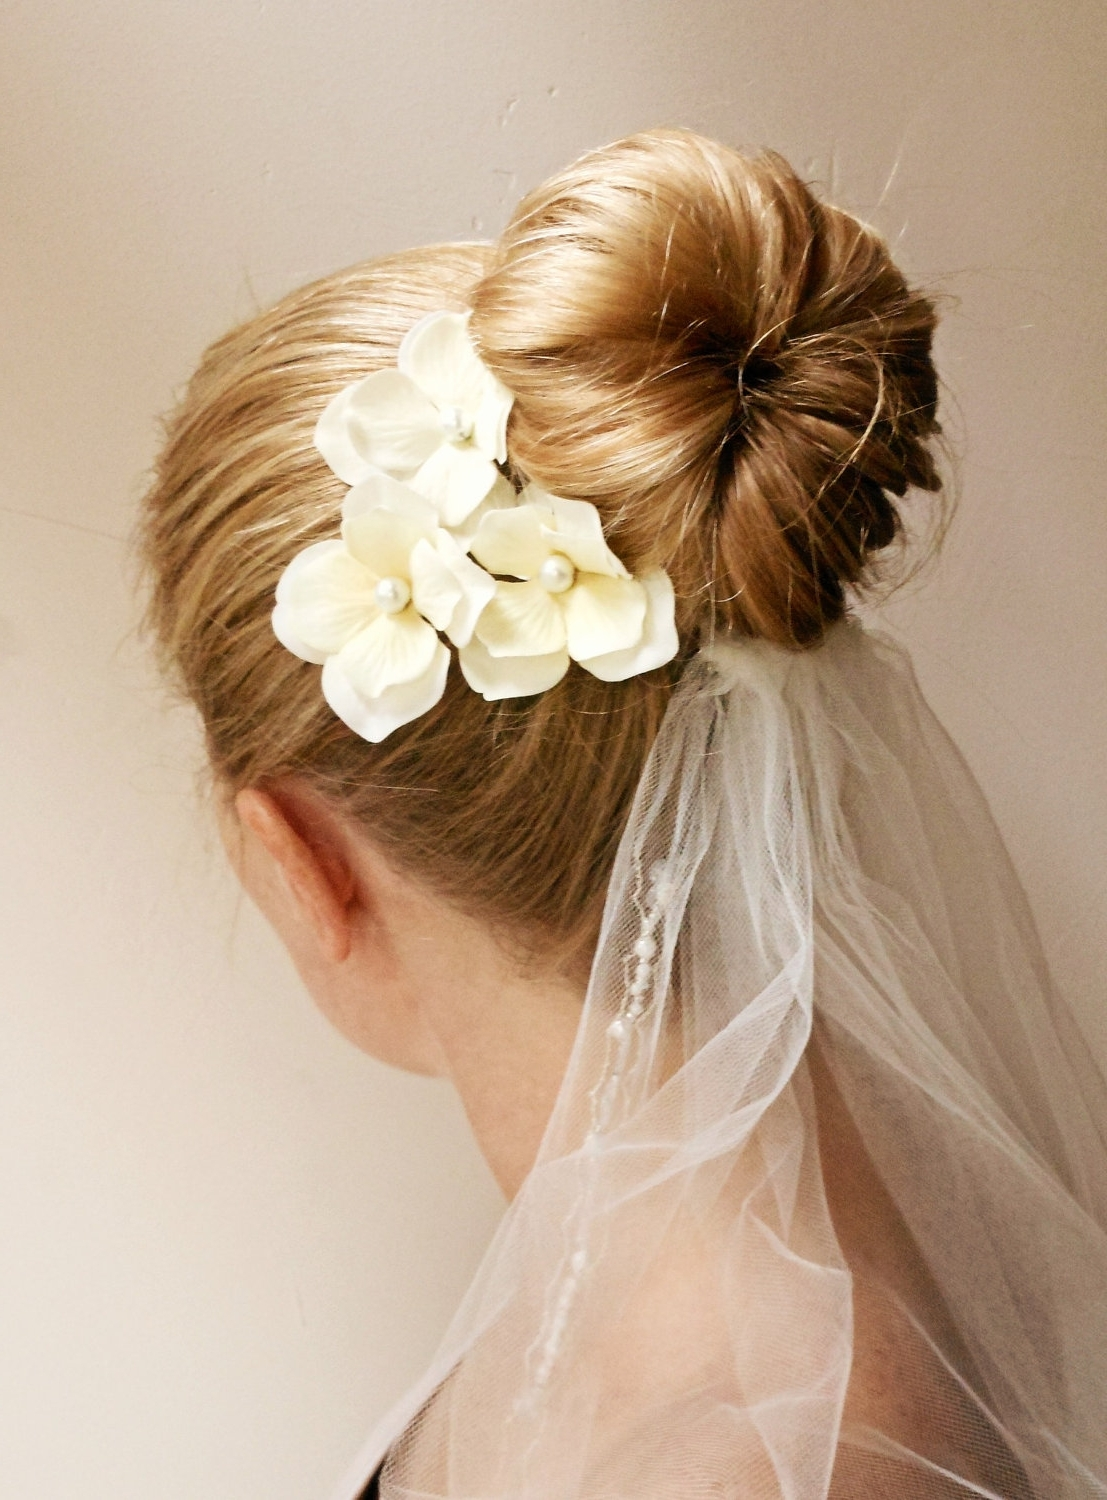 Wedding Hairstyles Ideas: Find The Pretty Look Through Long Hair Intended For Updo Hairstyles For Weddings (View 13 of 15)